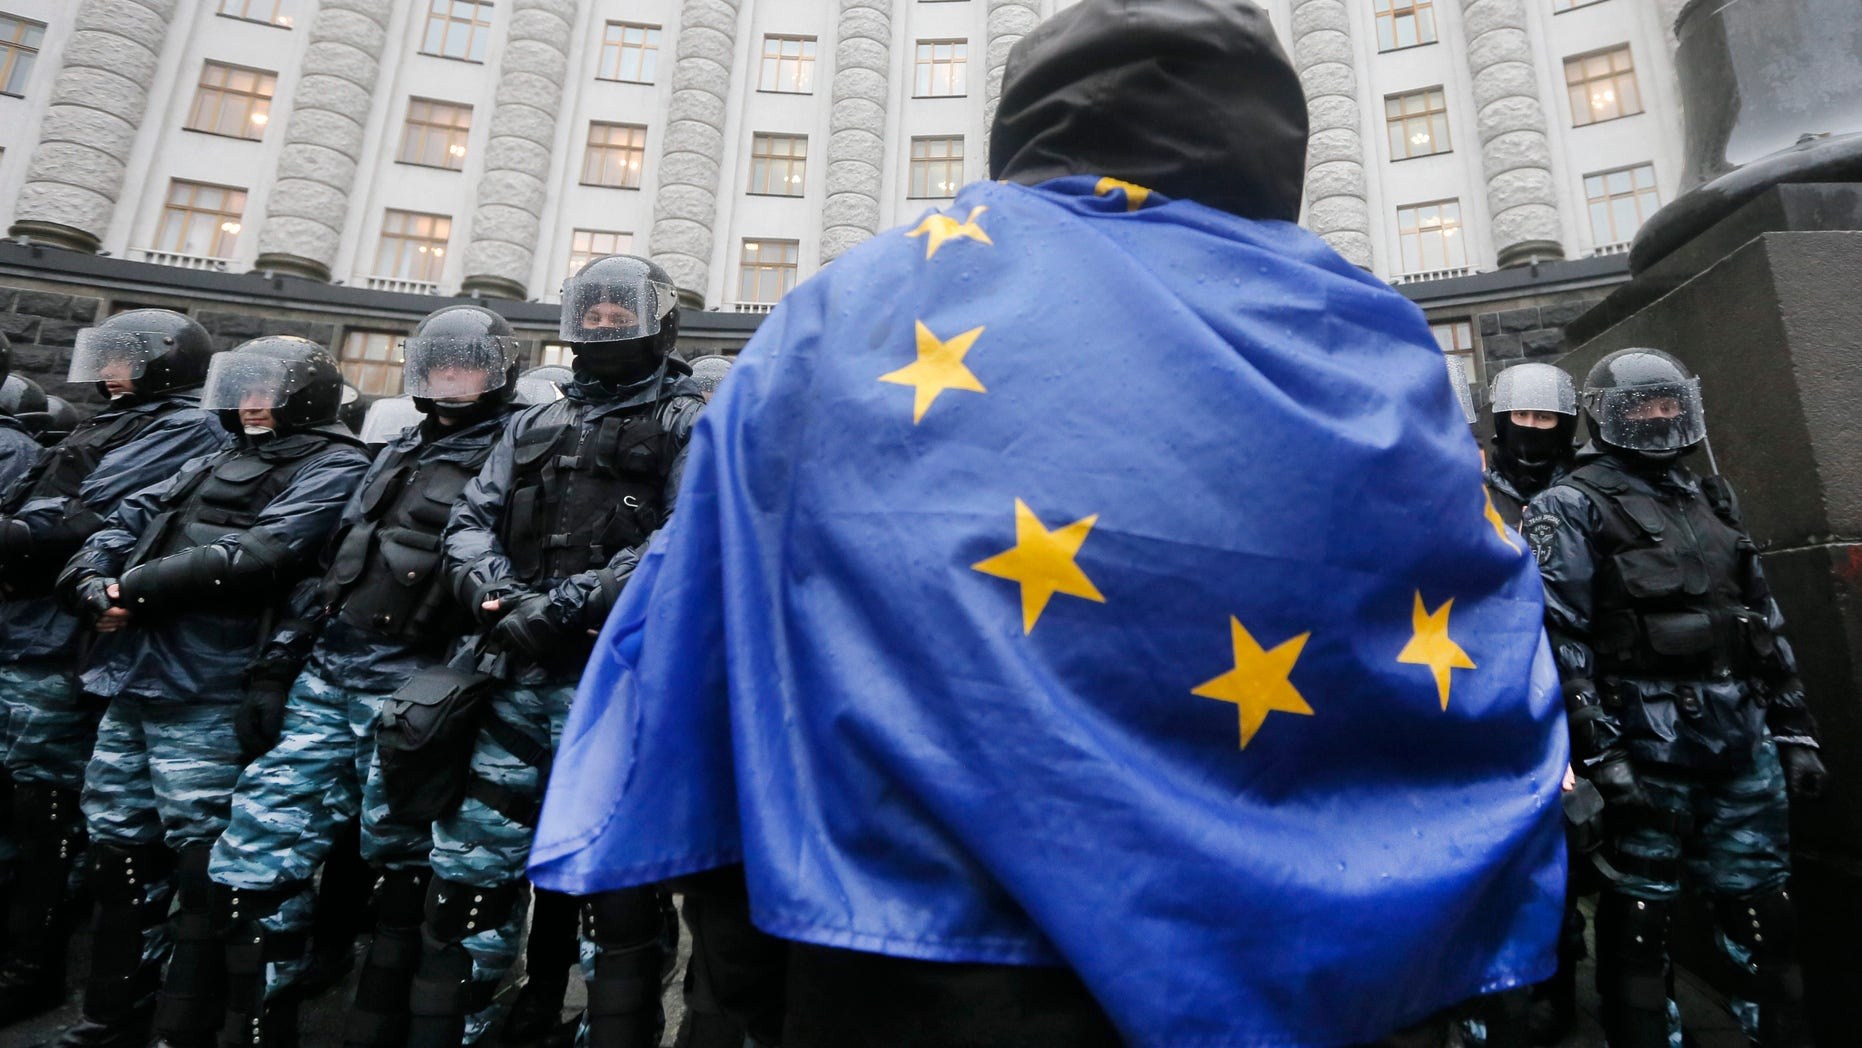 An  opposition supporter draped in an EU flag,  attends a protest in front of the Ukrainian Cabinet of Ministers in Kiev, Ukraine, Monday, Nov. 25, 2013. Hundreds of angry Ukrainians on Monday clashed with riot police outside the government building as protests continued in Kiev over the government's abrupt decision to pause integration with the West and tilt toward Moscow. The scuffle Monday morning follows a large protest in the heart of Kiev Sunday, the biggest since the 2004 Orange Revolution that brought a pro-Western government to power. Tens of thousands of people turned up to protest President Viktor Yanukovych's decision to snub a potentially historic deal with the EU and focus on ties with Moscow, after immense pressure from Russia. (AP Photo/Efrem Lukatsky)